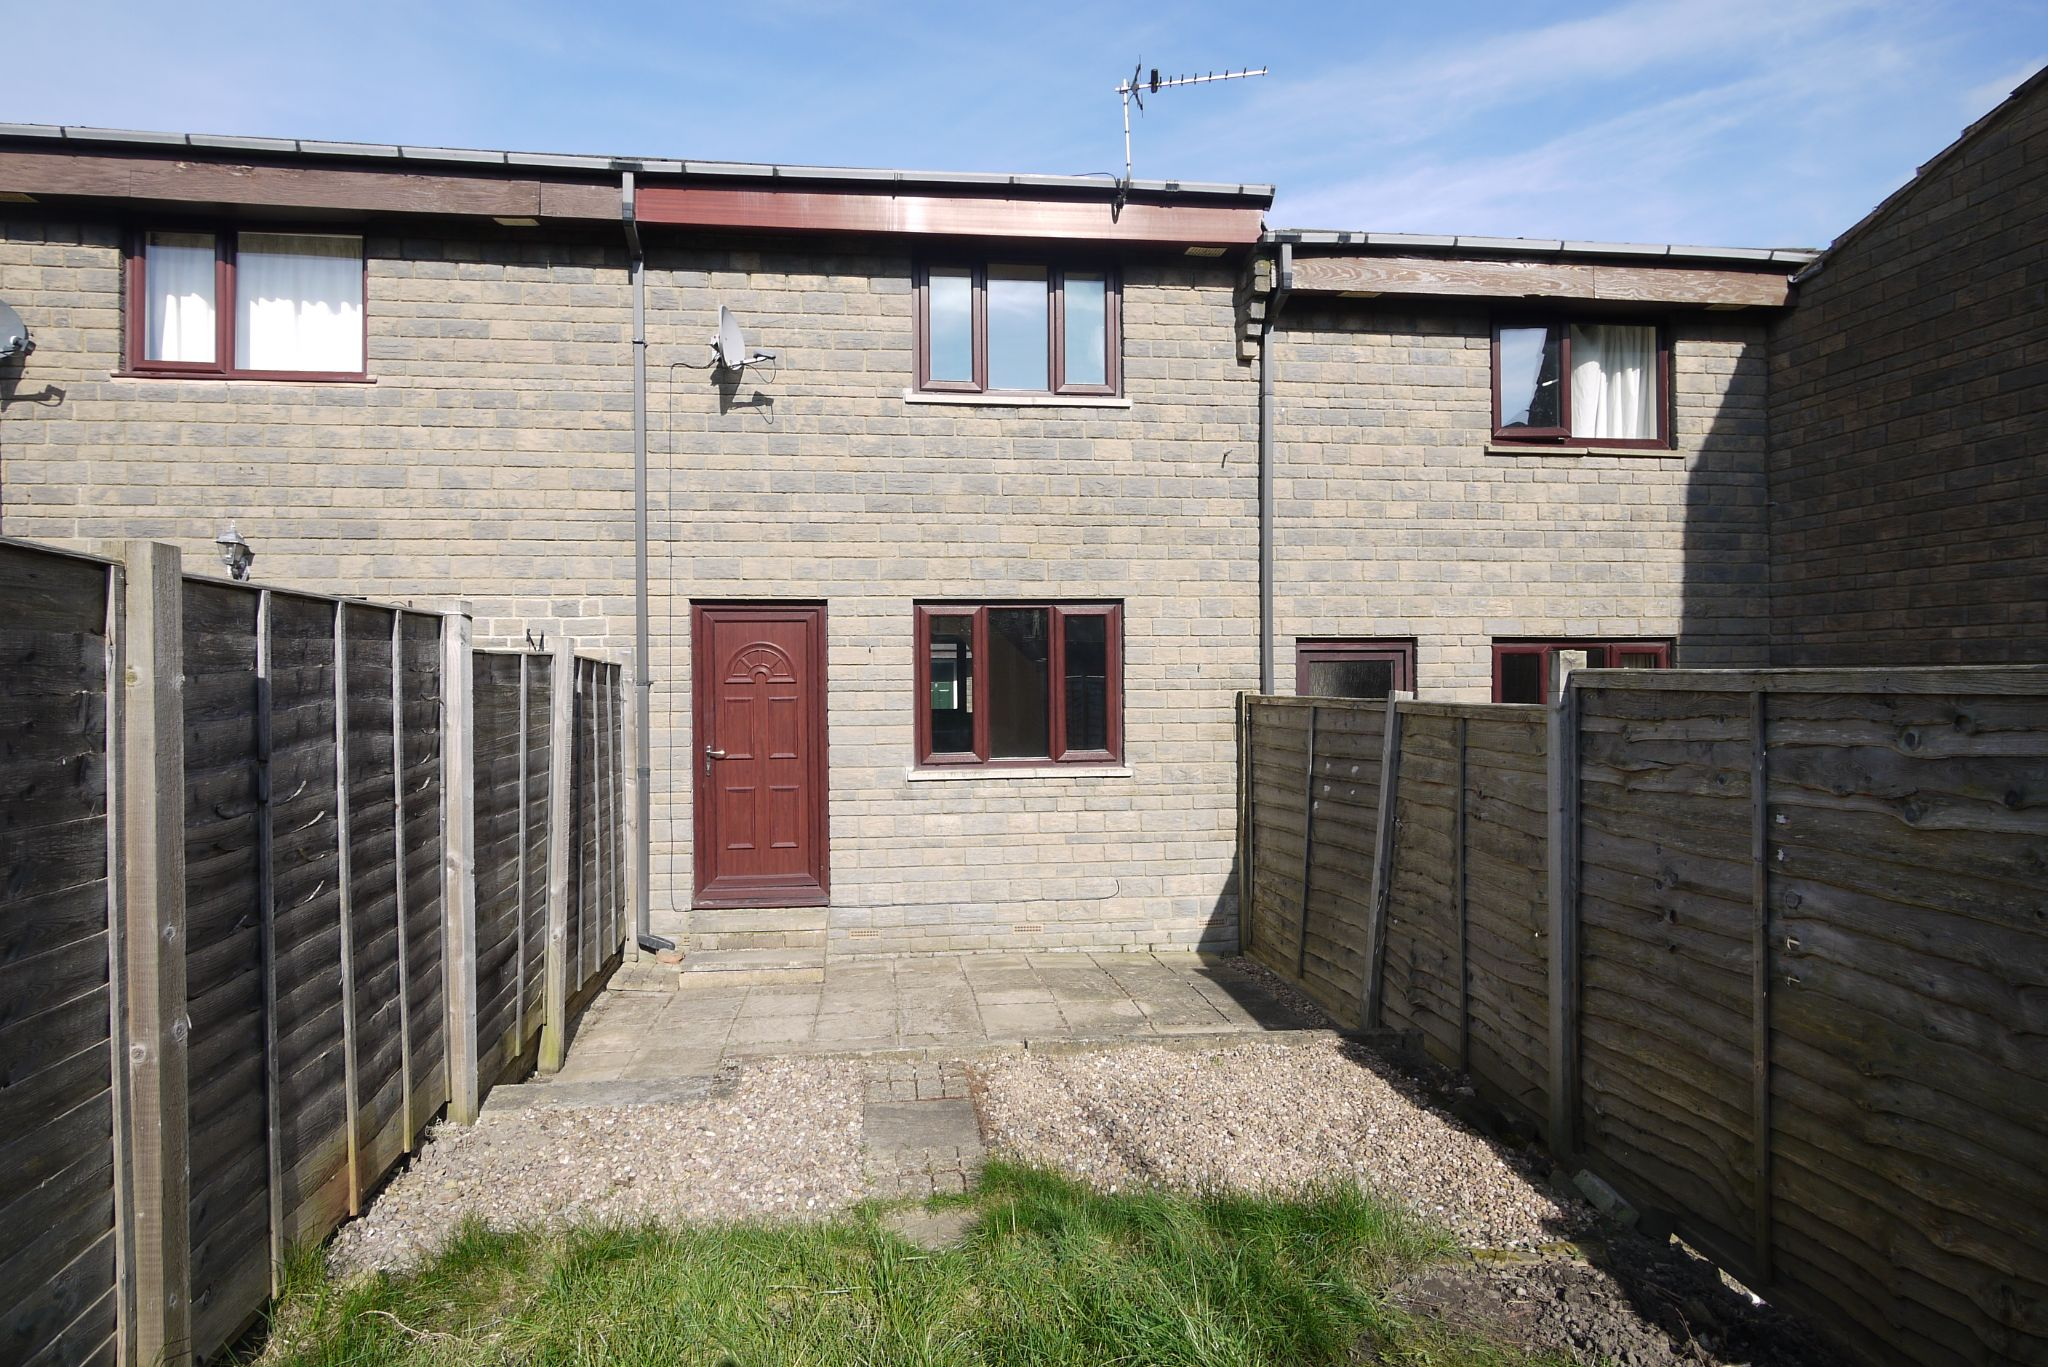 2 bedroom town house SSTC in Brighouse - Photograph 1.